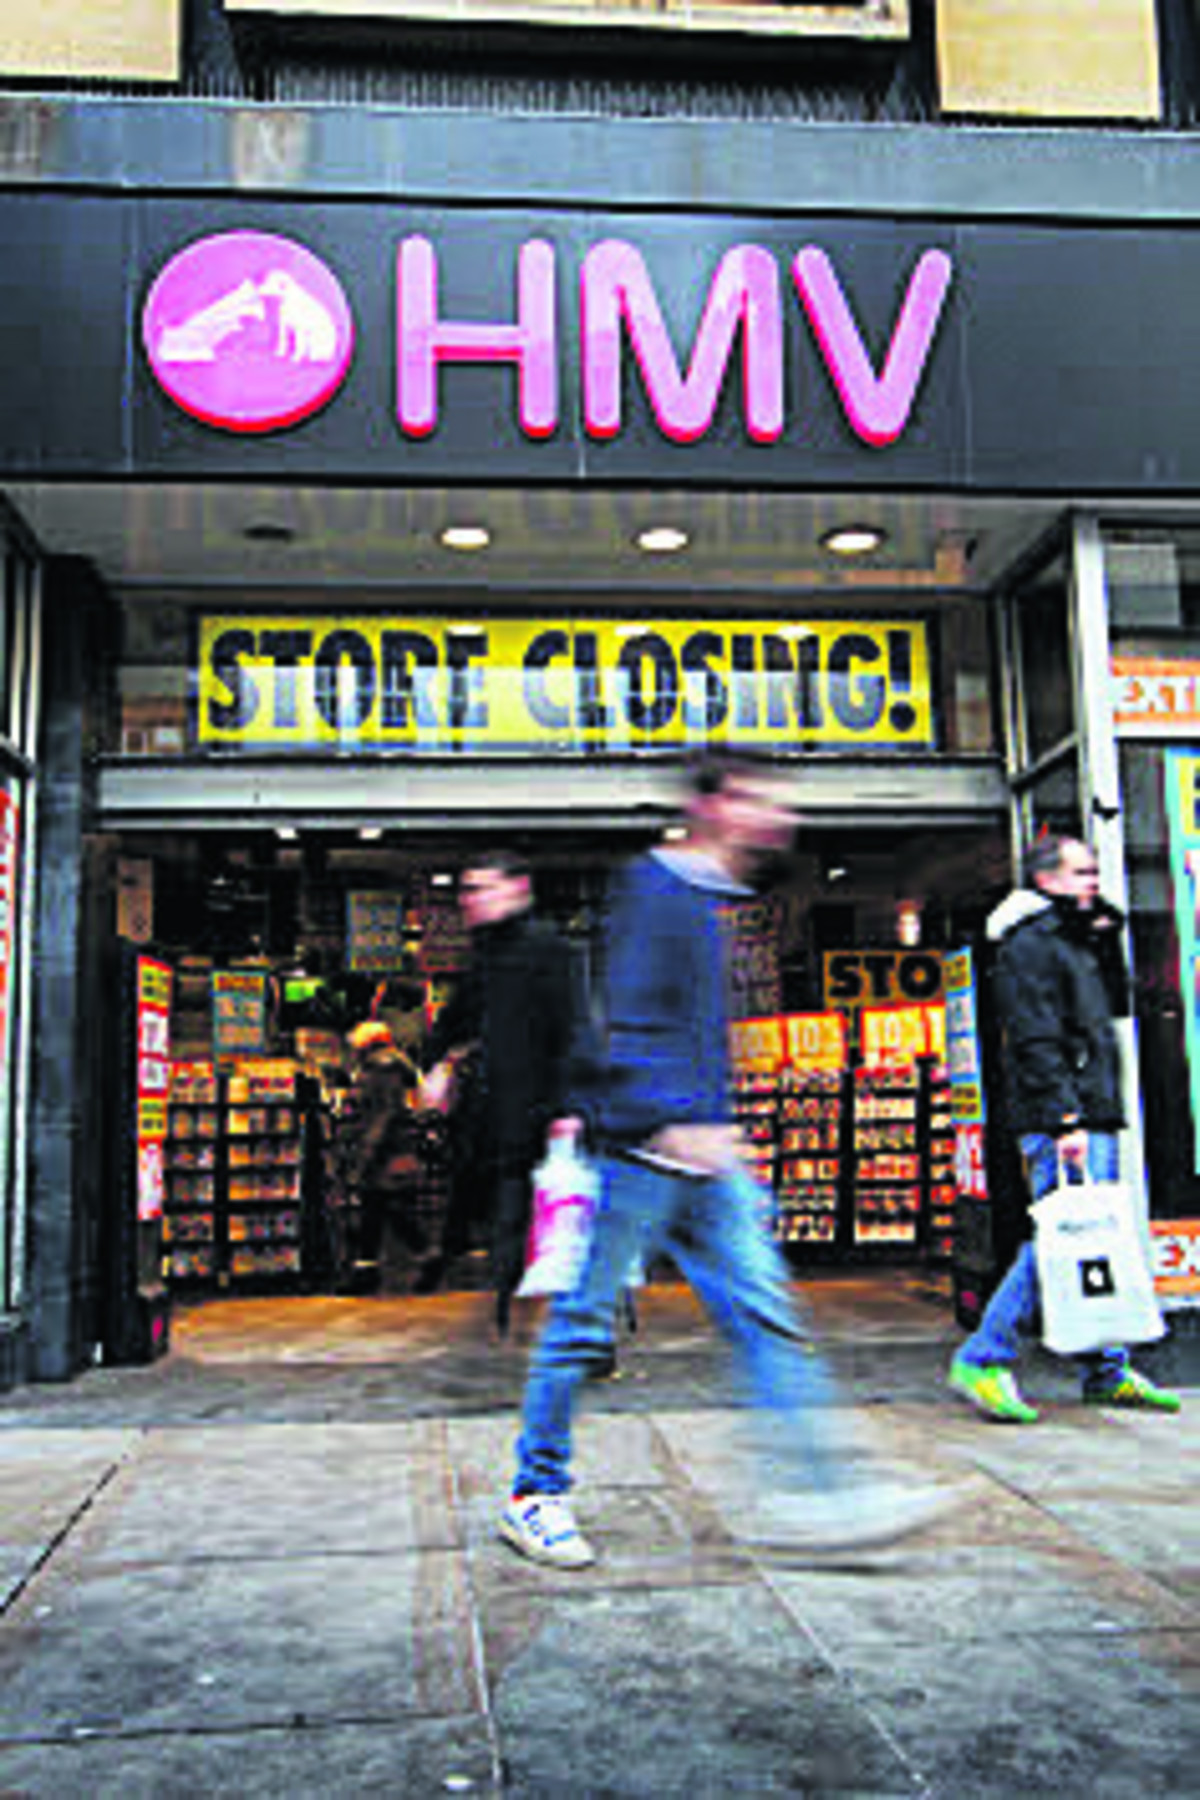 The Cornmarket HMV store